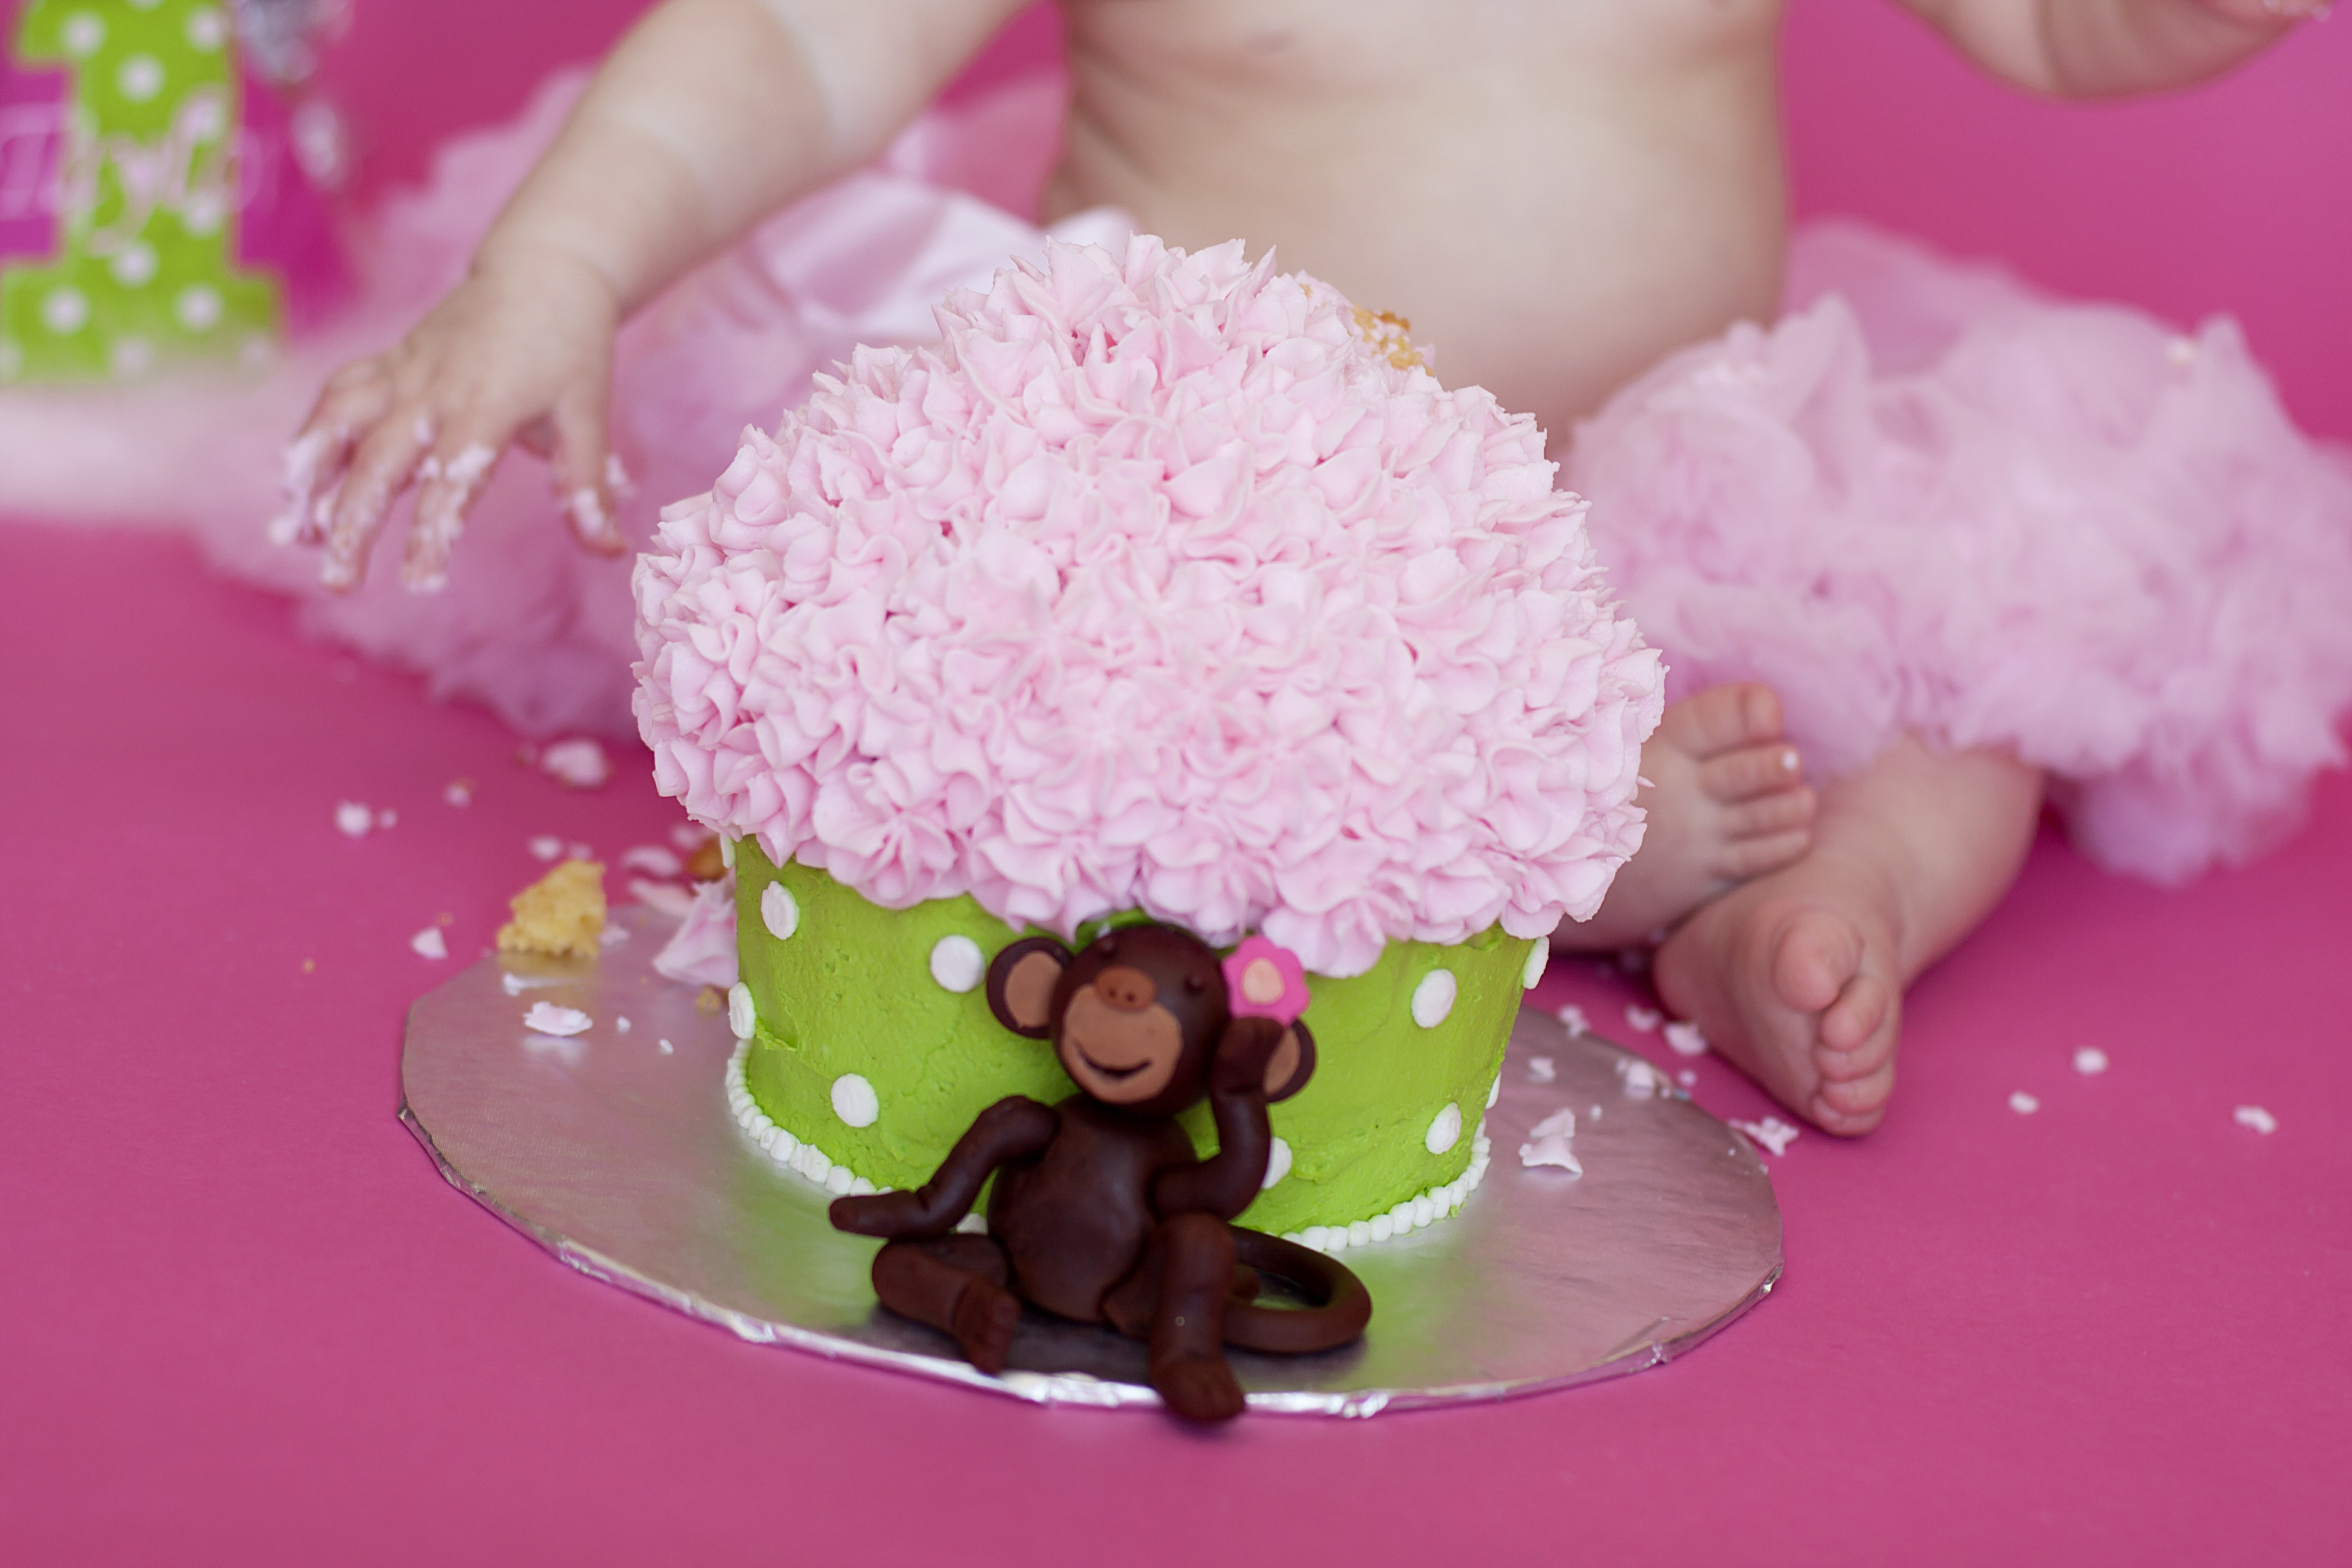 Miss T's Girlie Filled Fun Cake Smash | New Jersey Children's Photographer